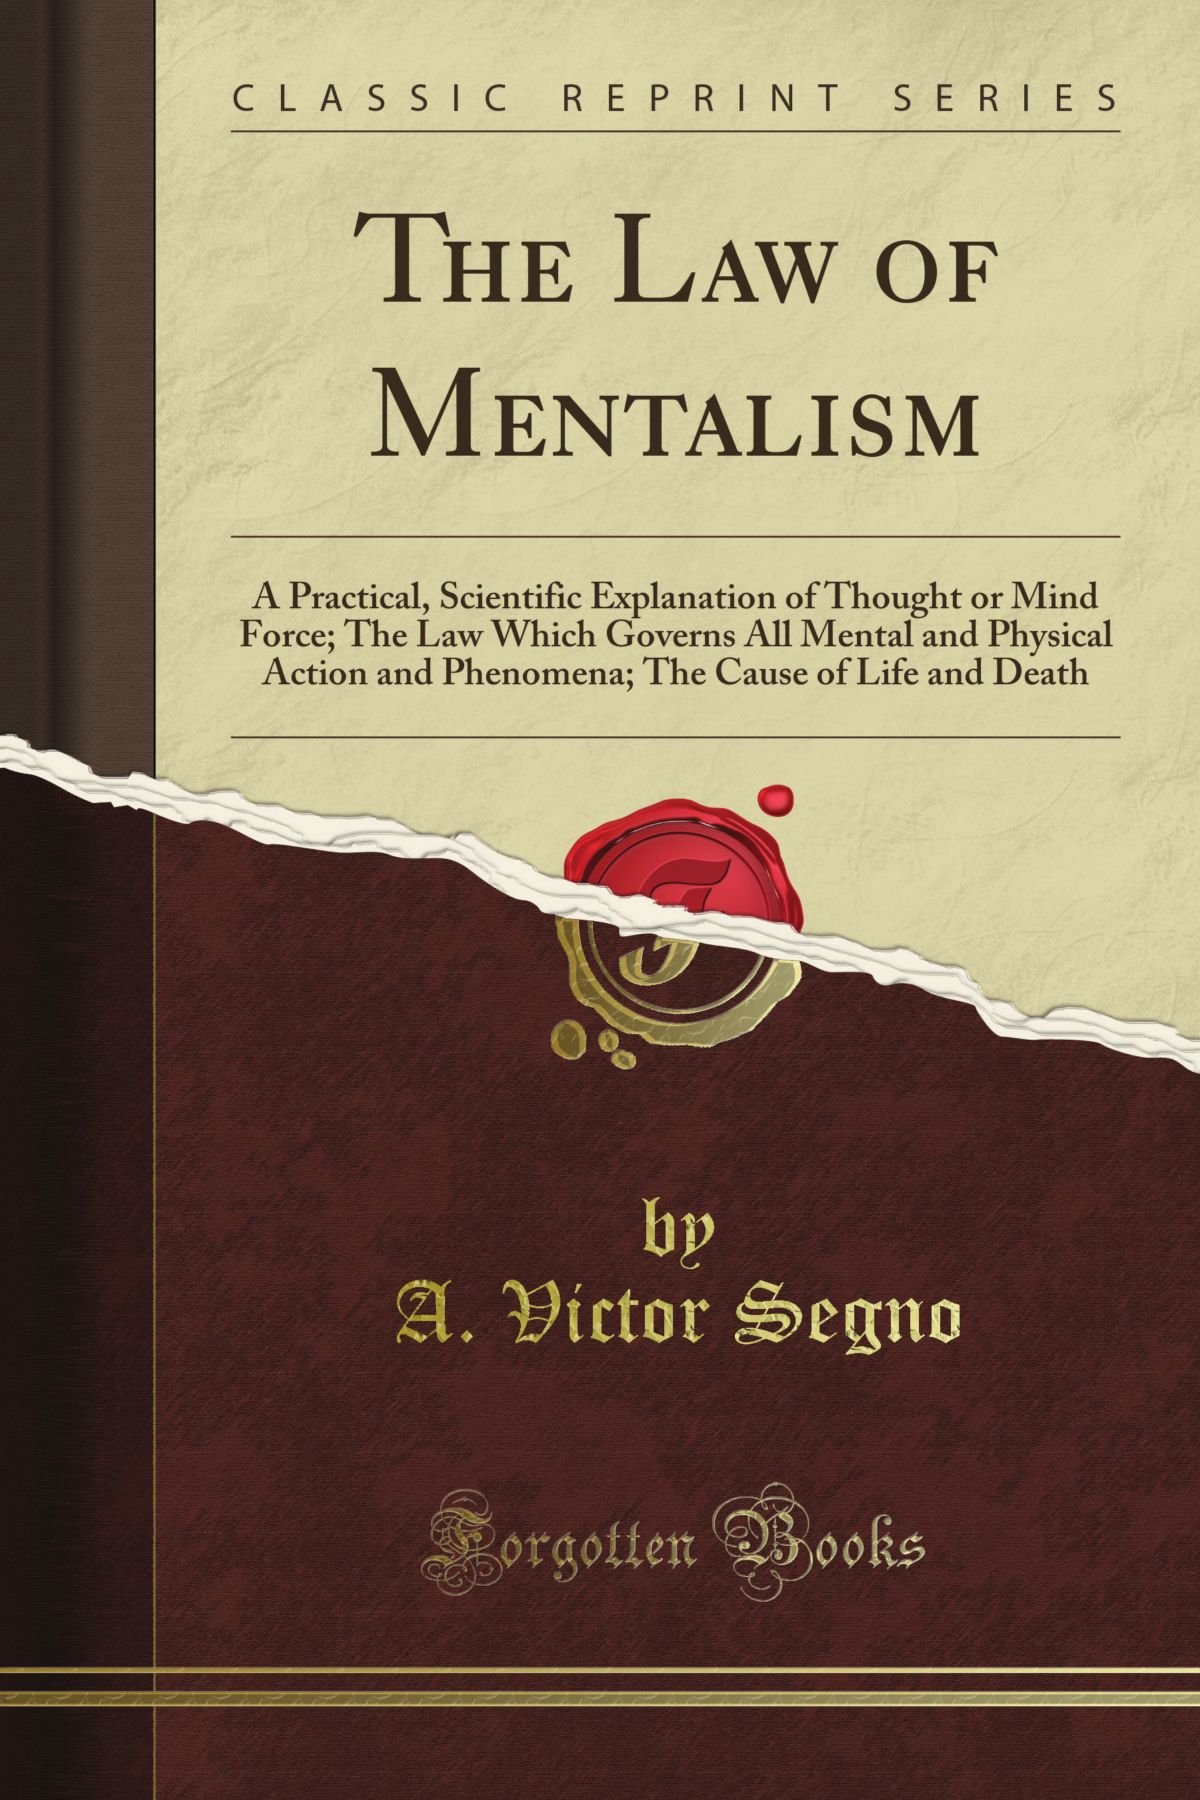 Download The Law of Mentalism: A Practical, Scientific Explanation of Thought or Mind Force; The Law Which Governs All Mental and Physical Action and Phenomena; The Cause of Life and Death (Classic Reprint) PDF